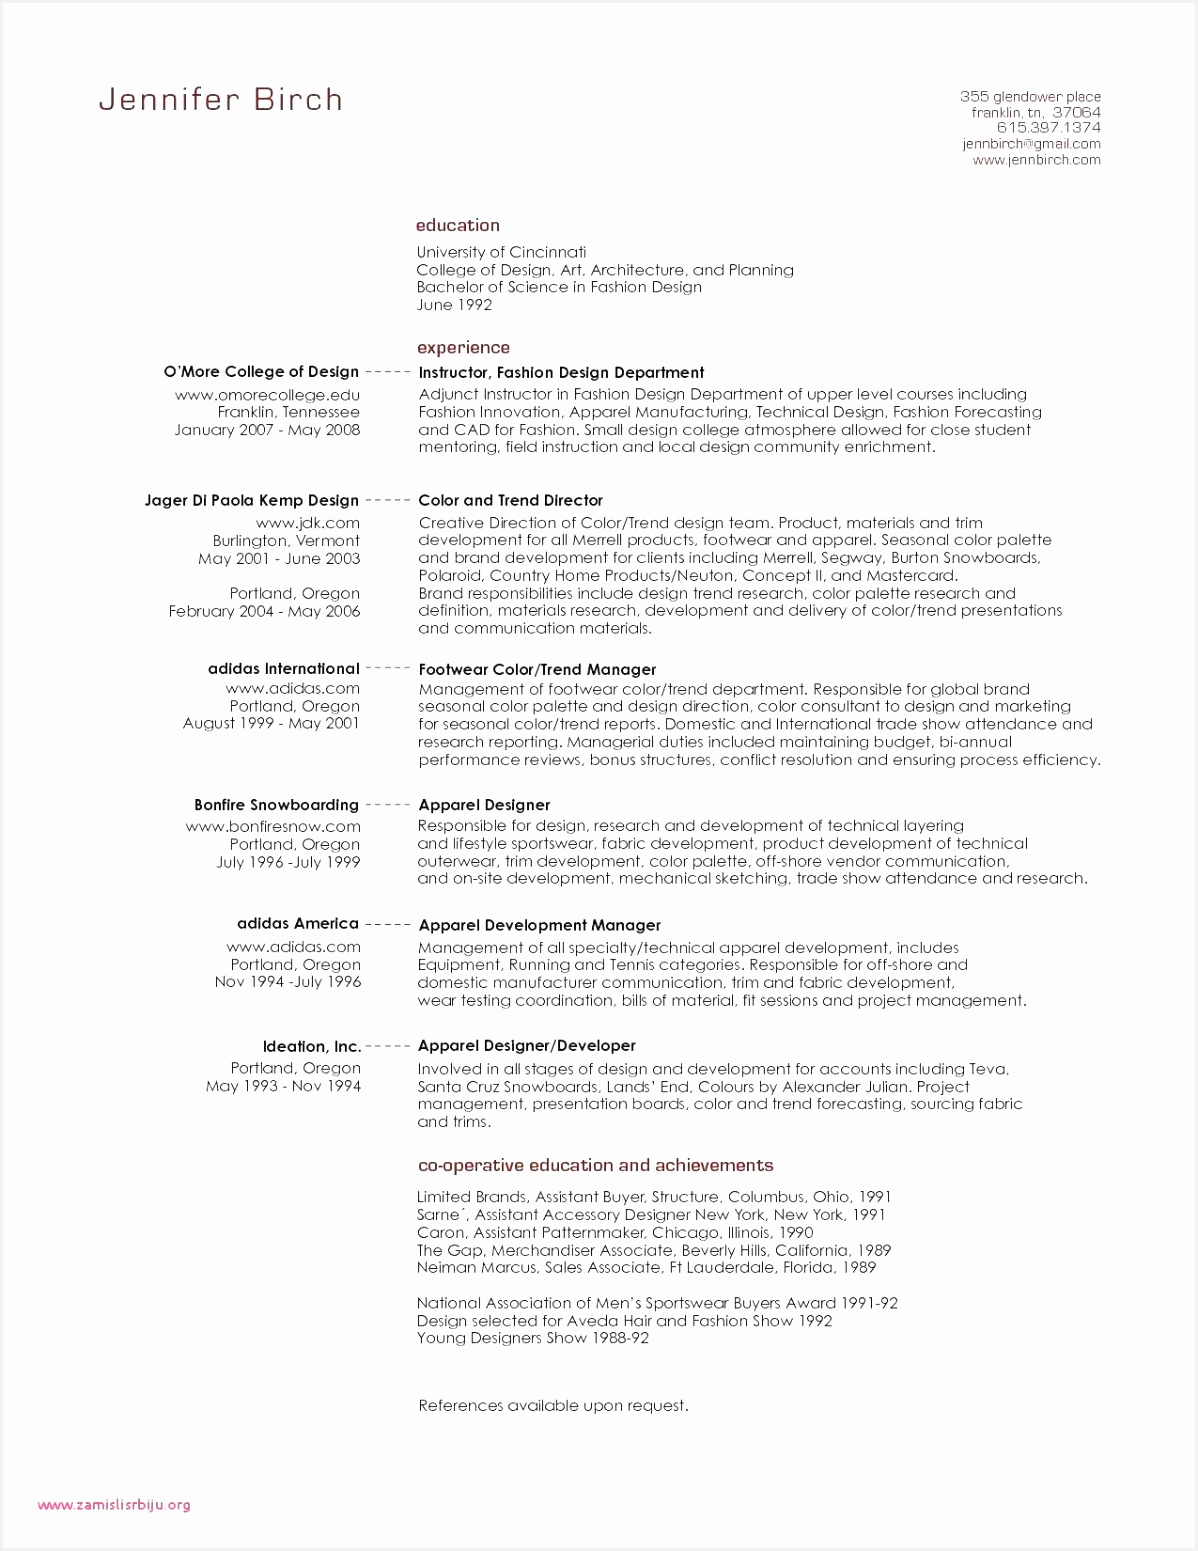 Associate Project Manager Sample Resume toeje Unique Nanny Sample Resume Basic Sample Nanny Resume Nanny Resume Samples15511198